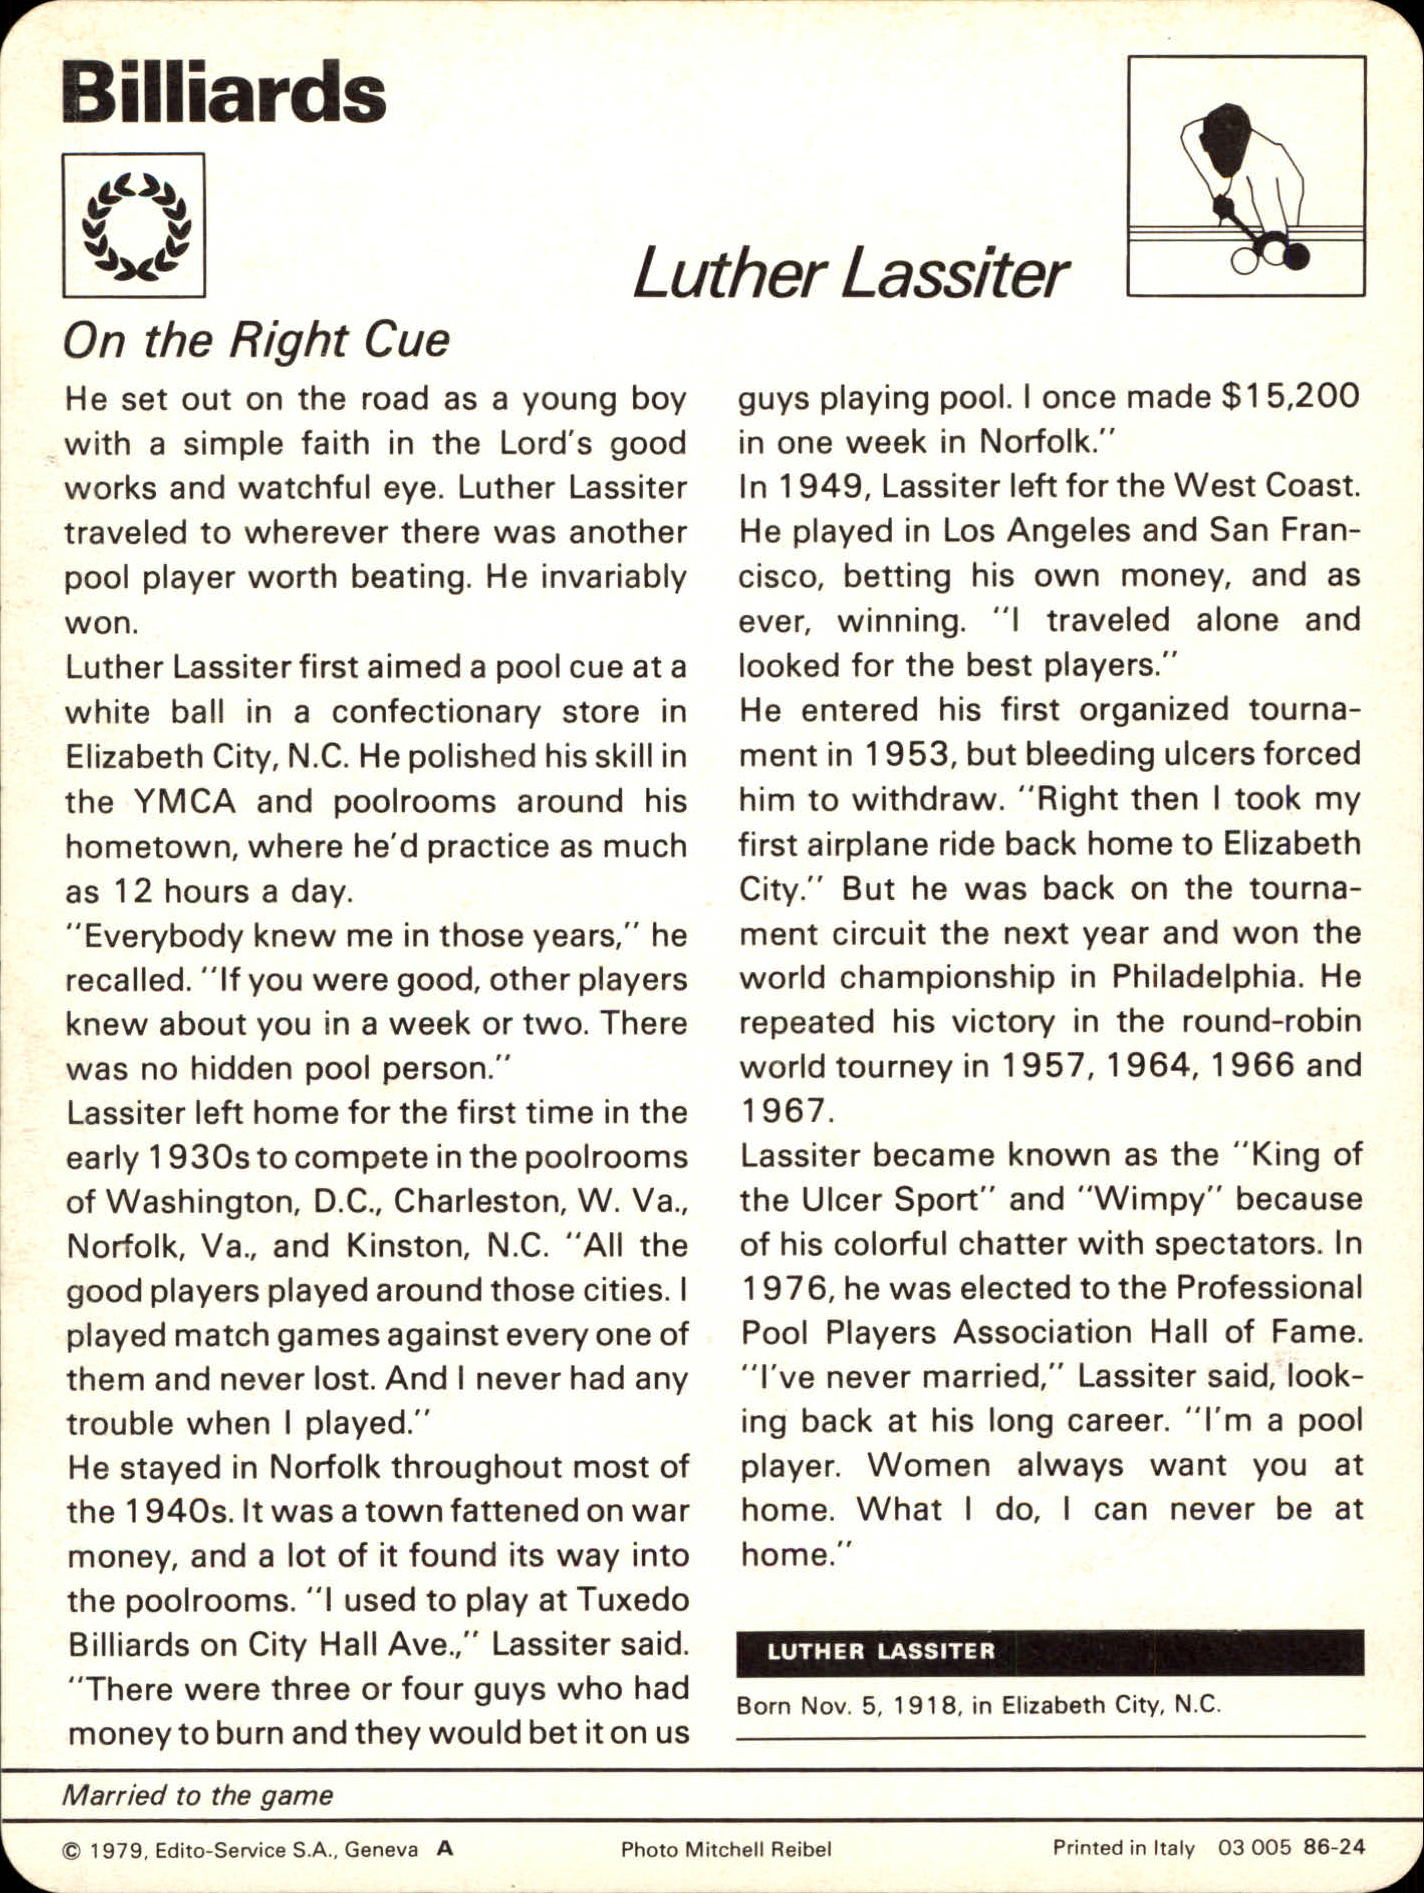 Luther Wimpy Lassiter Sportscaster Card - On the Right Cue - Back